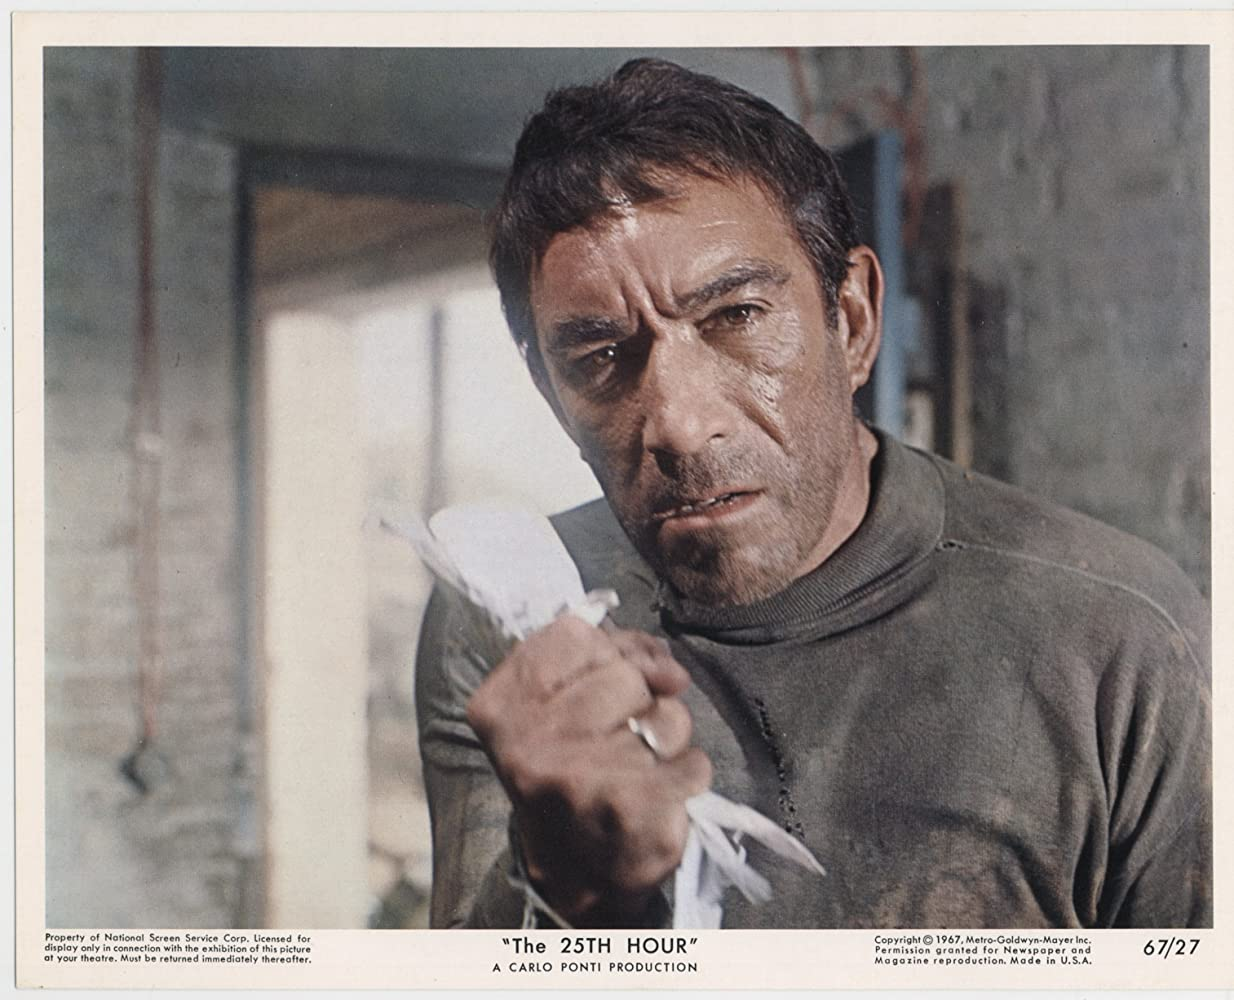 Anthony Quinn in The 25th Hour (1967)